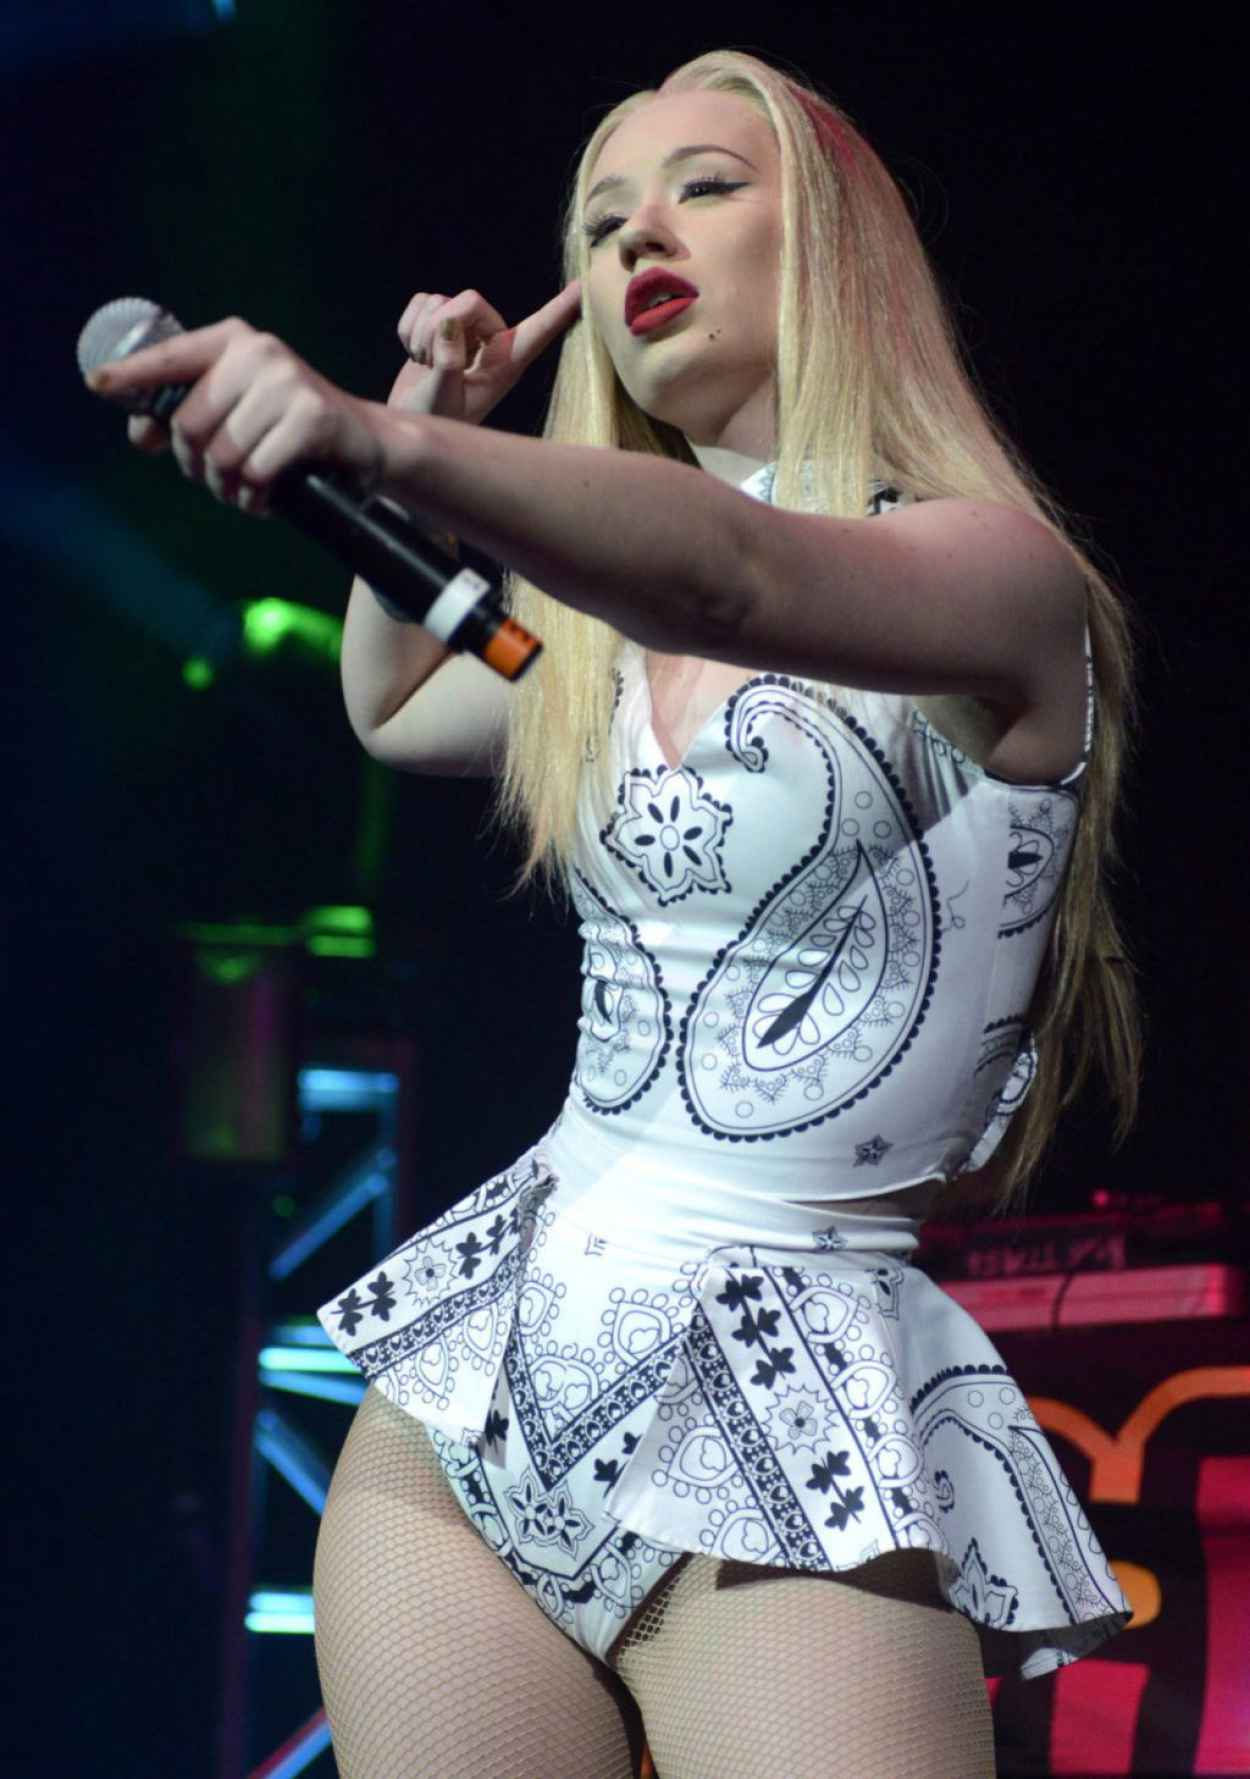 Iggy Azalea Performs - Wild Jam in San Jose - December 2015-1